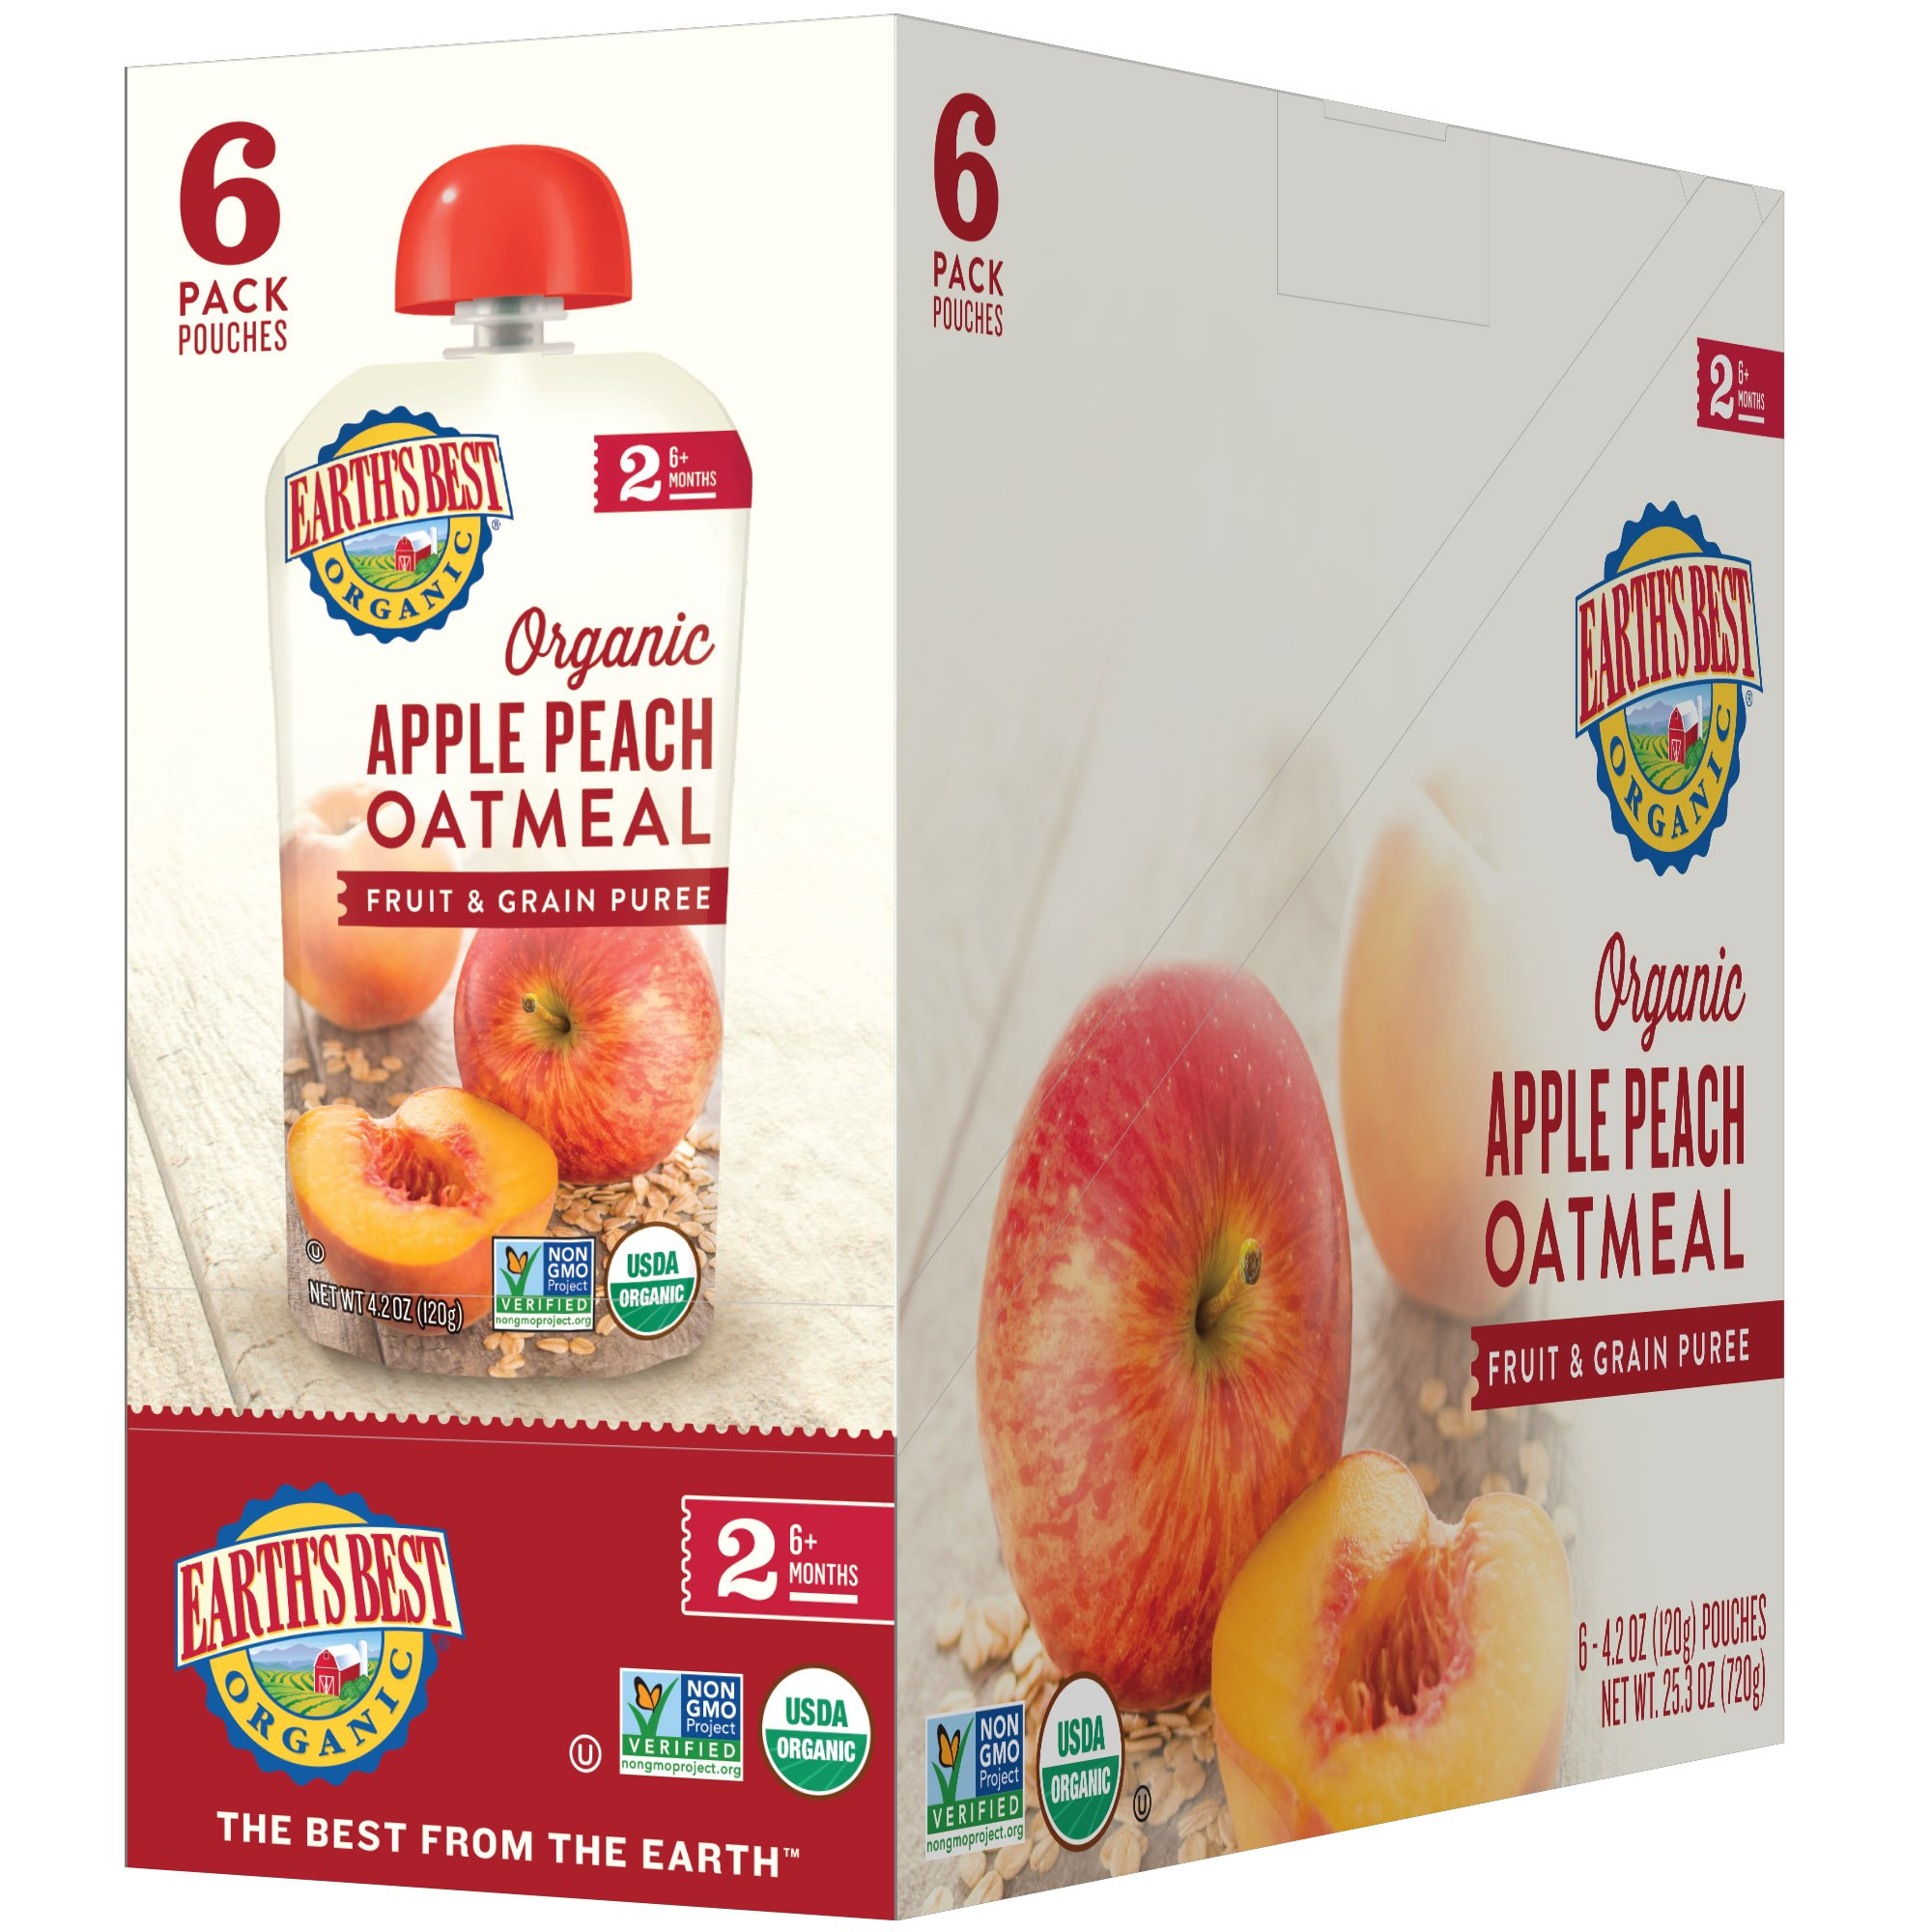 Earth's Best Organic Stage 2 Baby Food, Apple Peach and Oatmeal, 4.2 oz. Pouch (Pack of 12) by Earth's Best